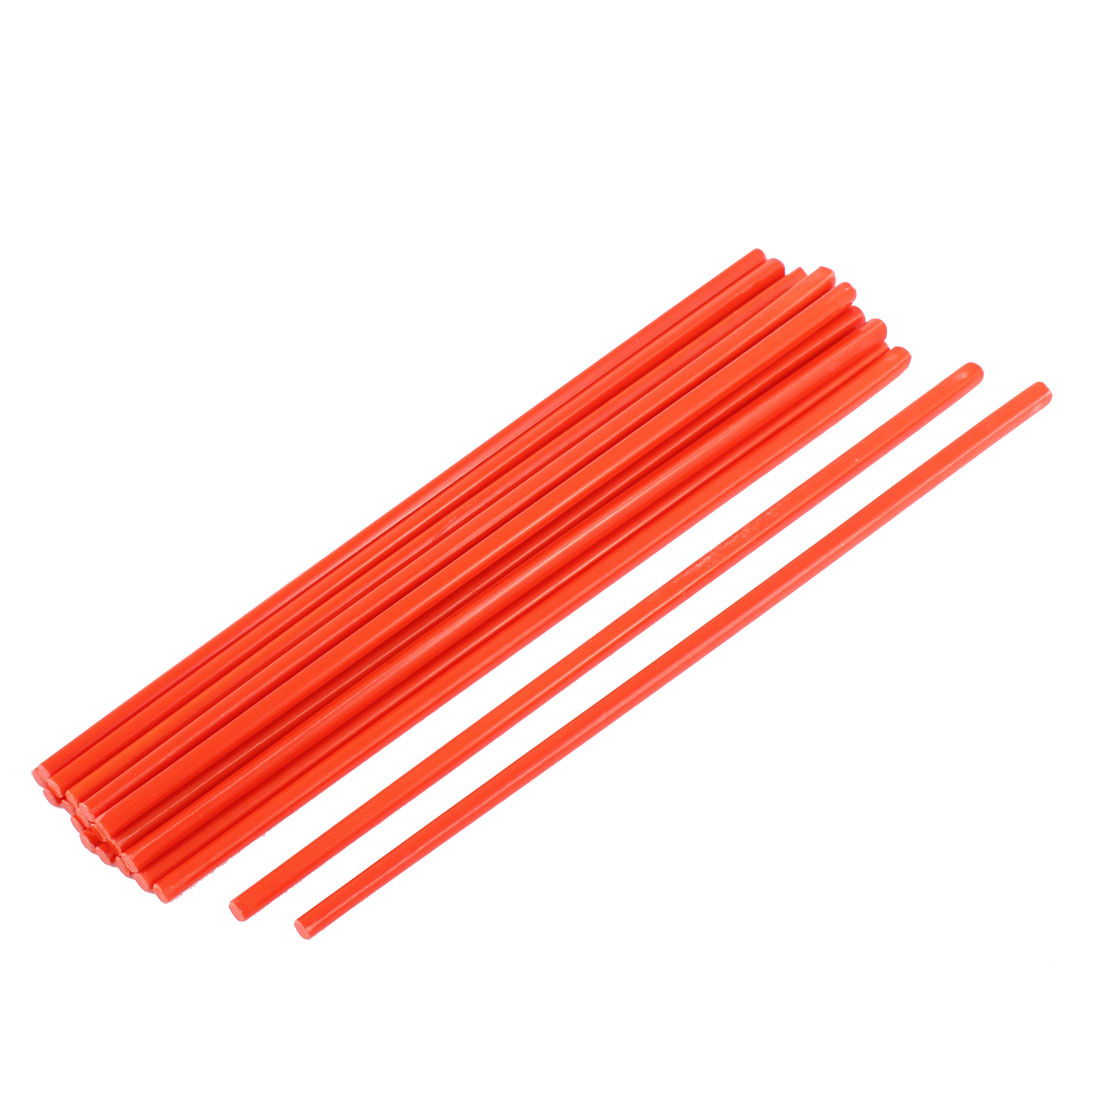 Tableware Dinner Plastic Chopsticks Orange Red 27cm Length 10Pairs